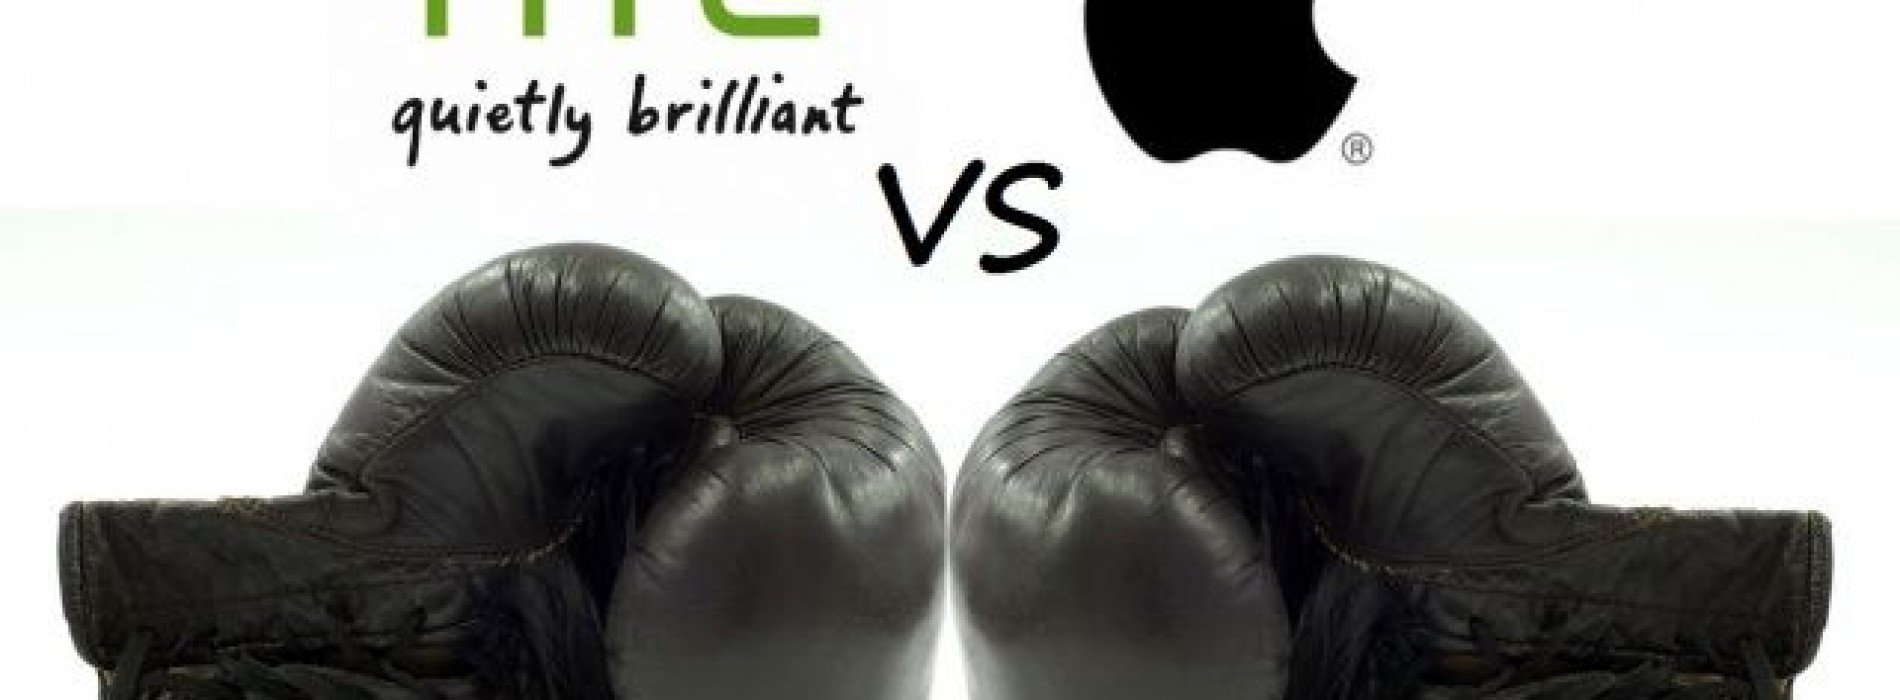 Calling off the dogs: Apple and HTC settle all patent litigation in 10-year license agreement